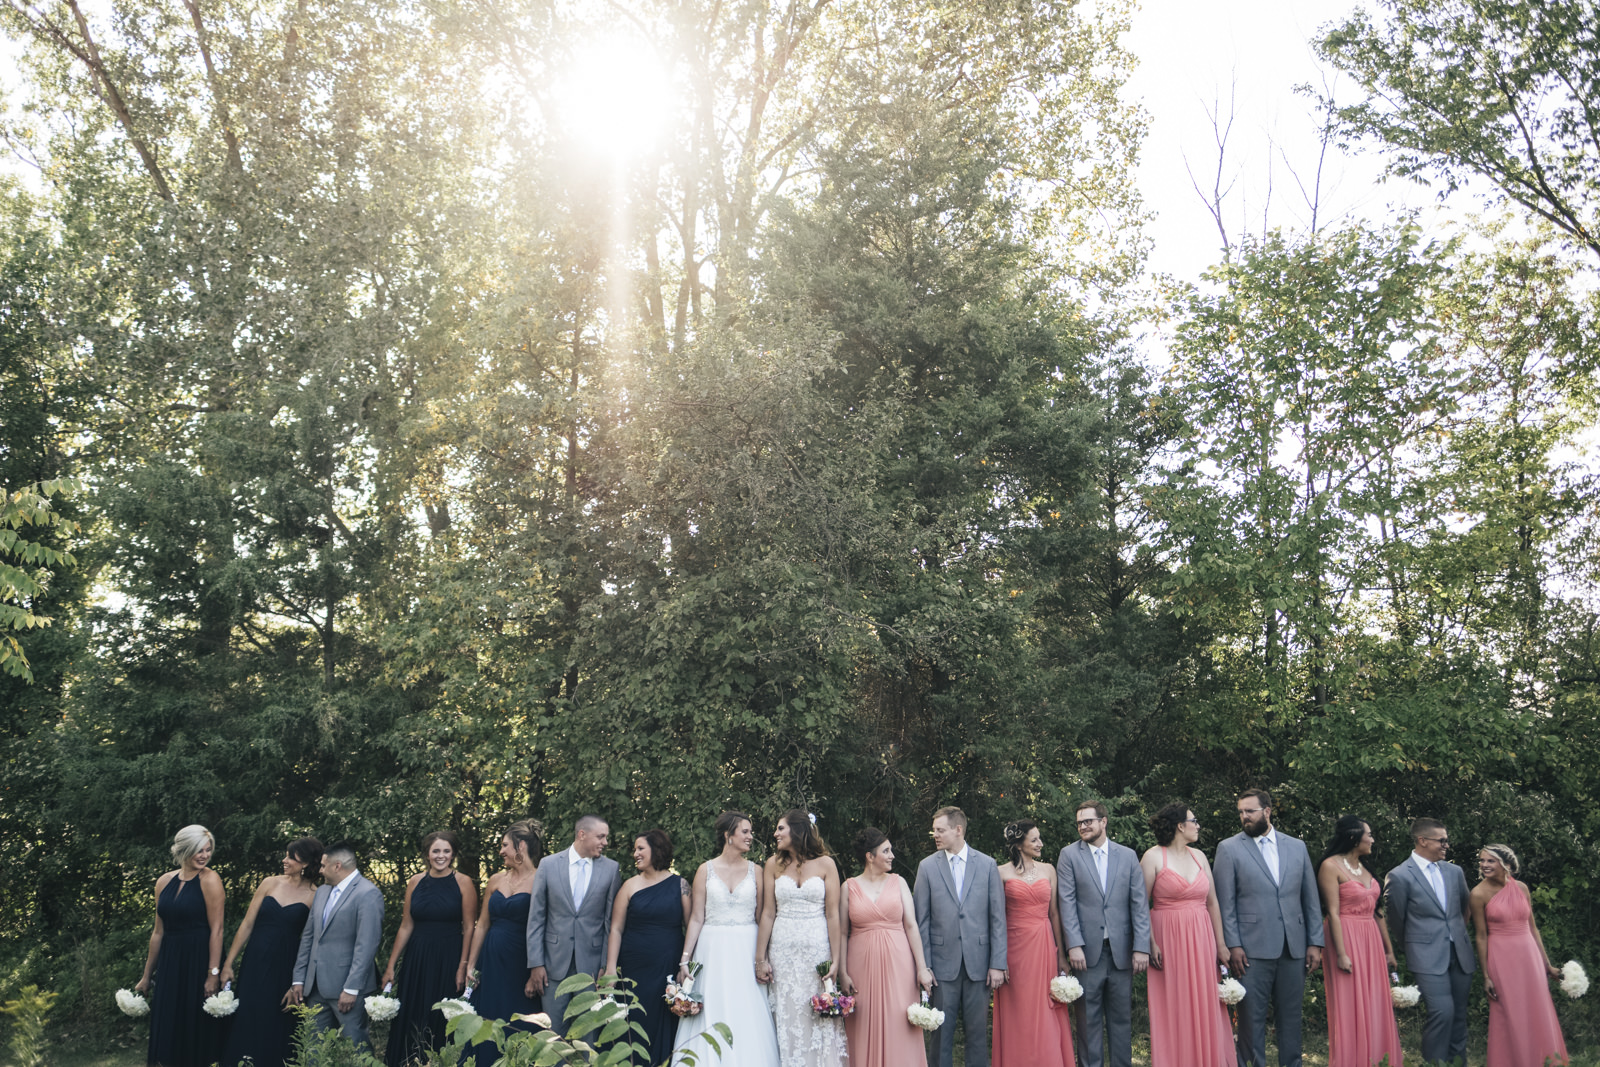 Brides and bridal party head to Swan Creek Metropark in Toledo, Ohio after wedding ceremony at The Premier.